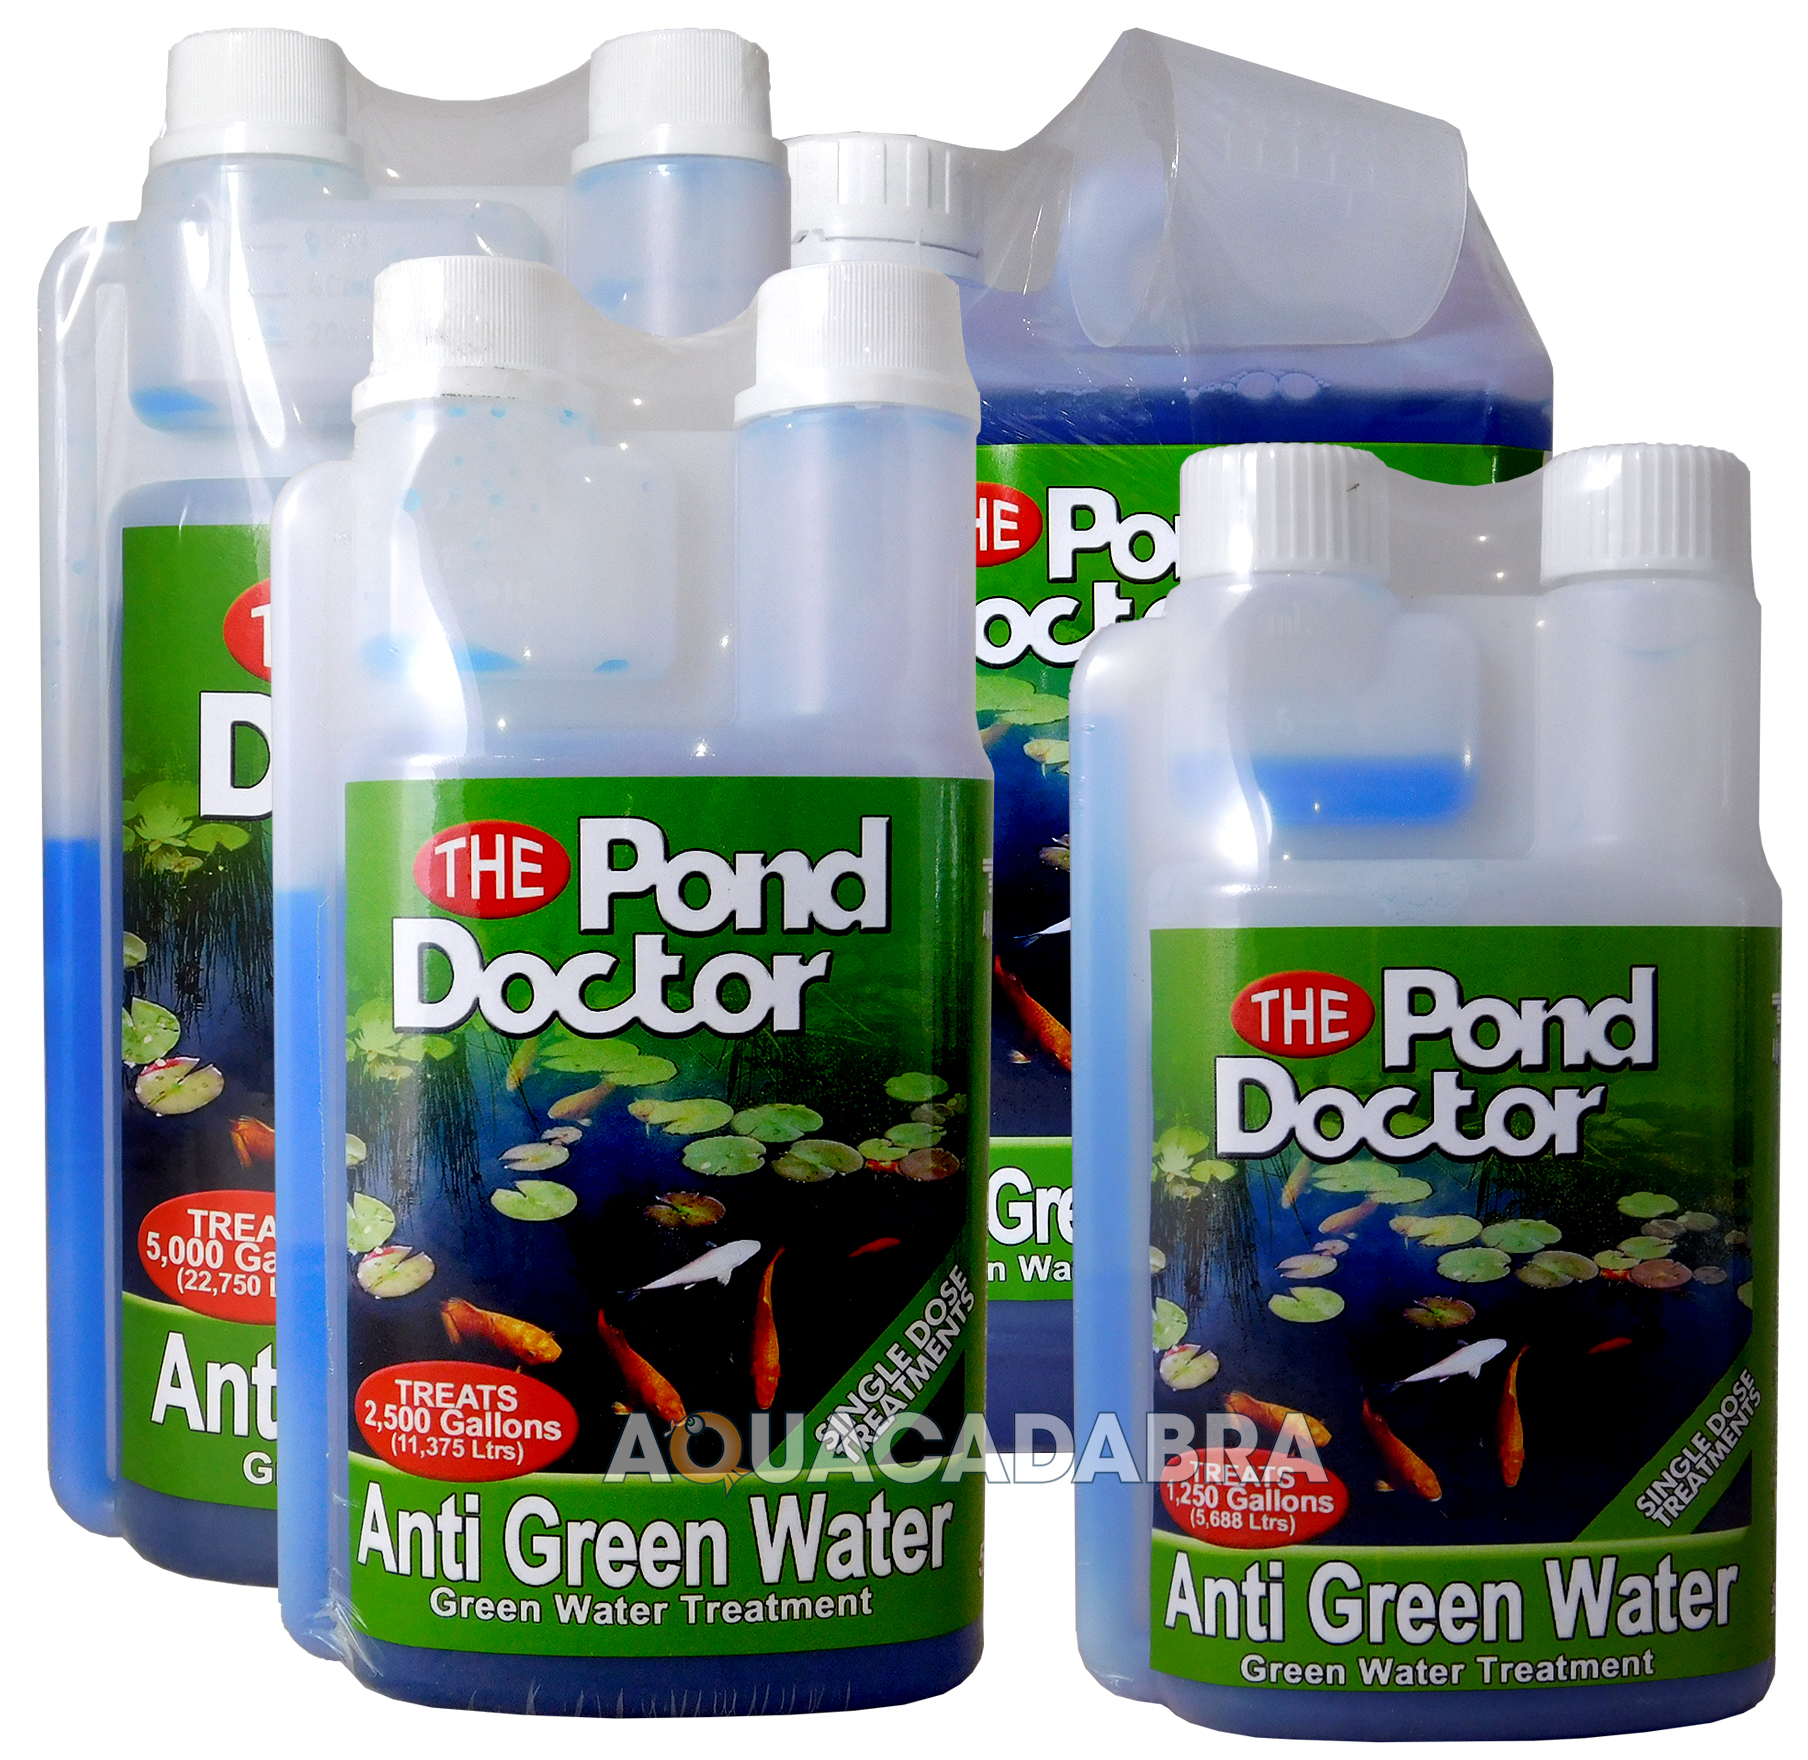 Tap pond doctor anti green water algae treatment garden for Green water in pond